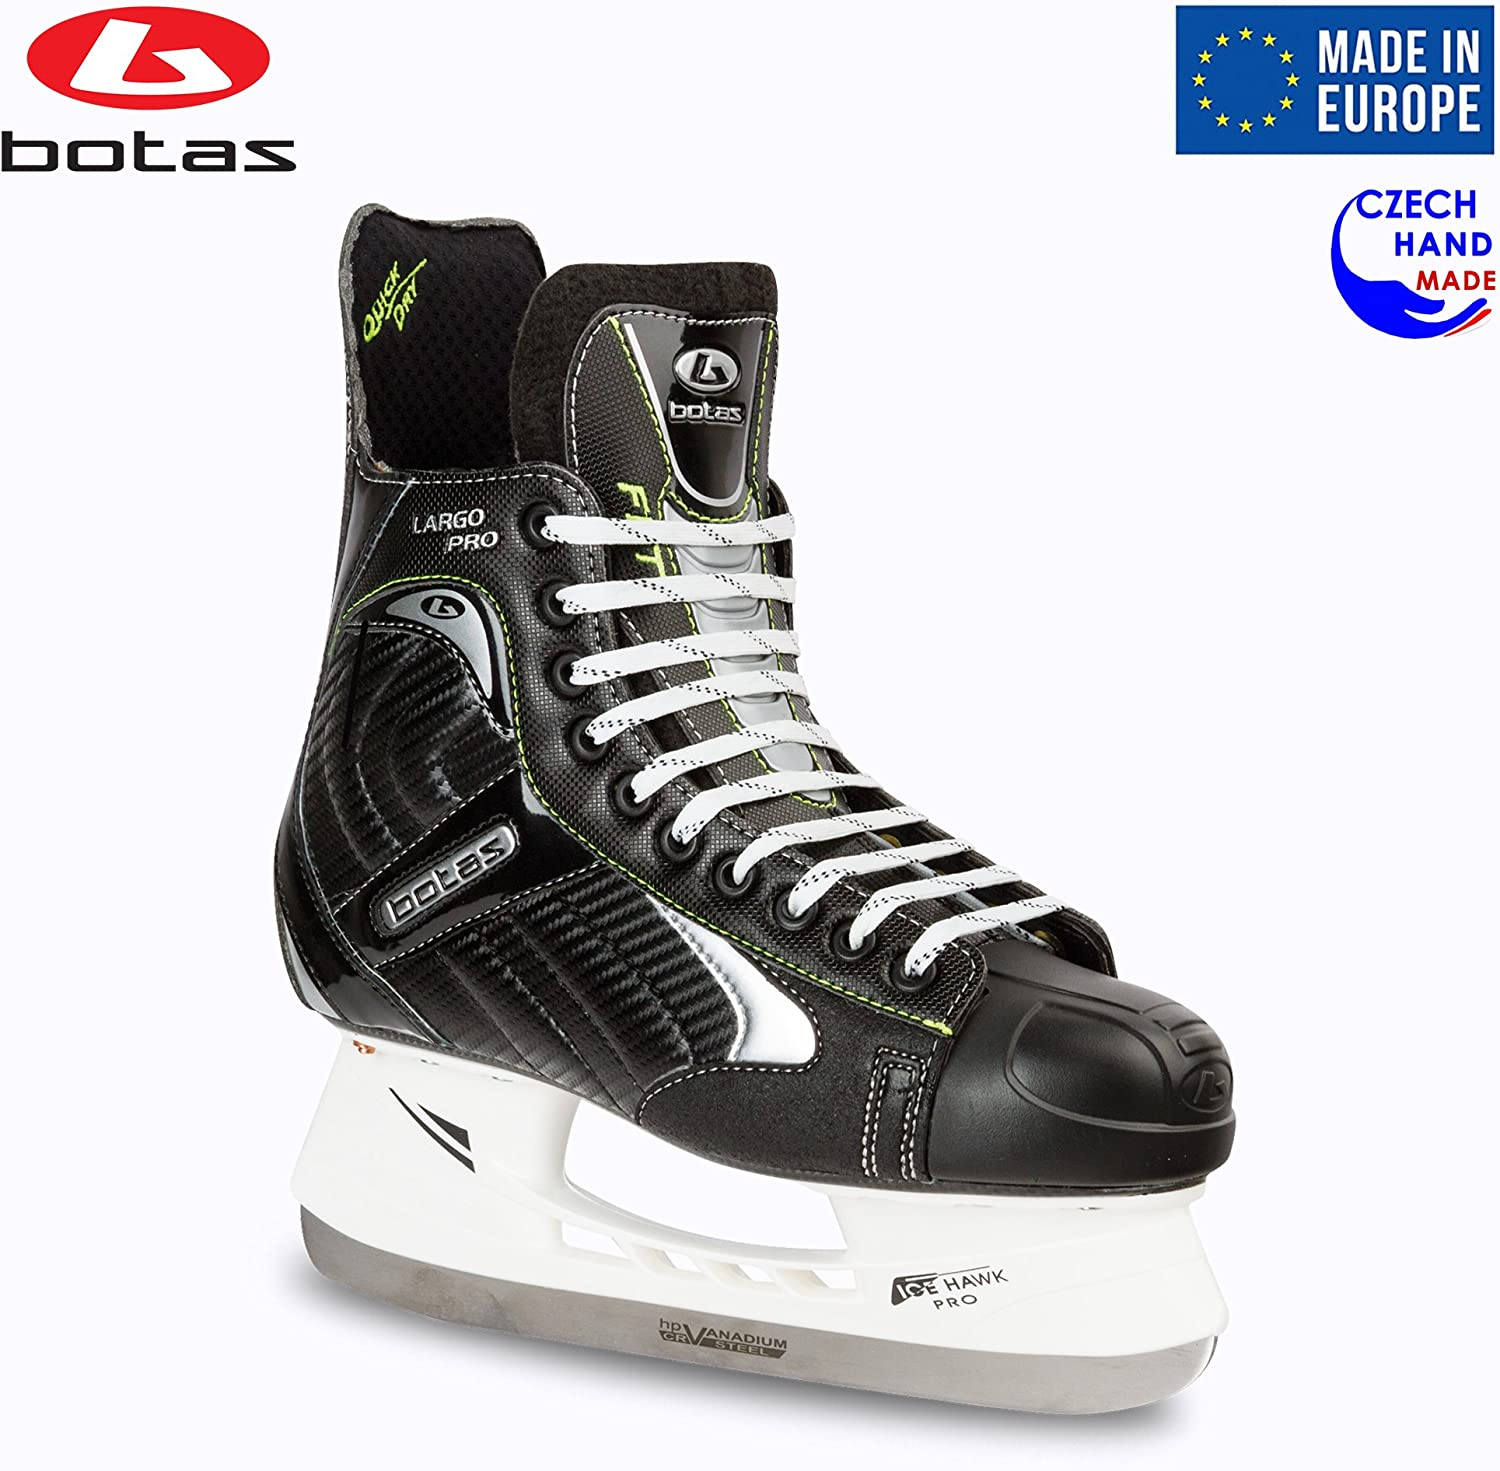 Botas – Largo 571 PRO – Men s Ice Hockey Skates Made in Europe Czech Republic Color Black